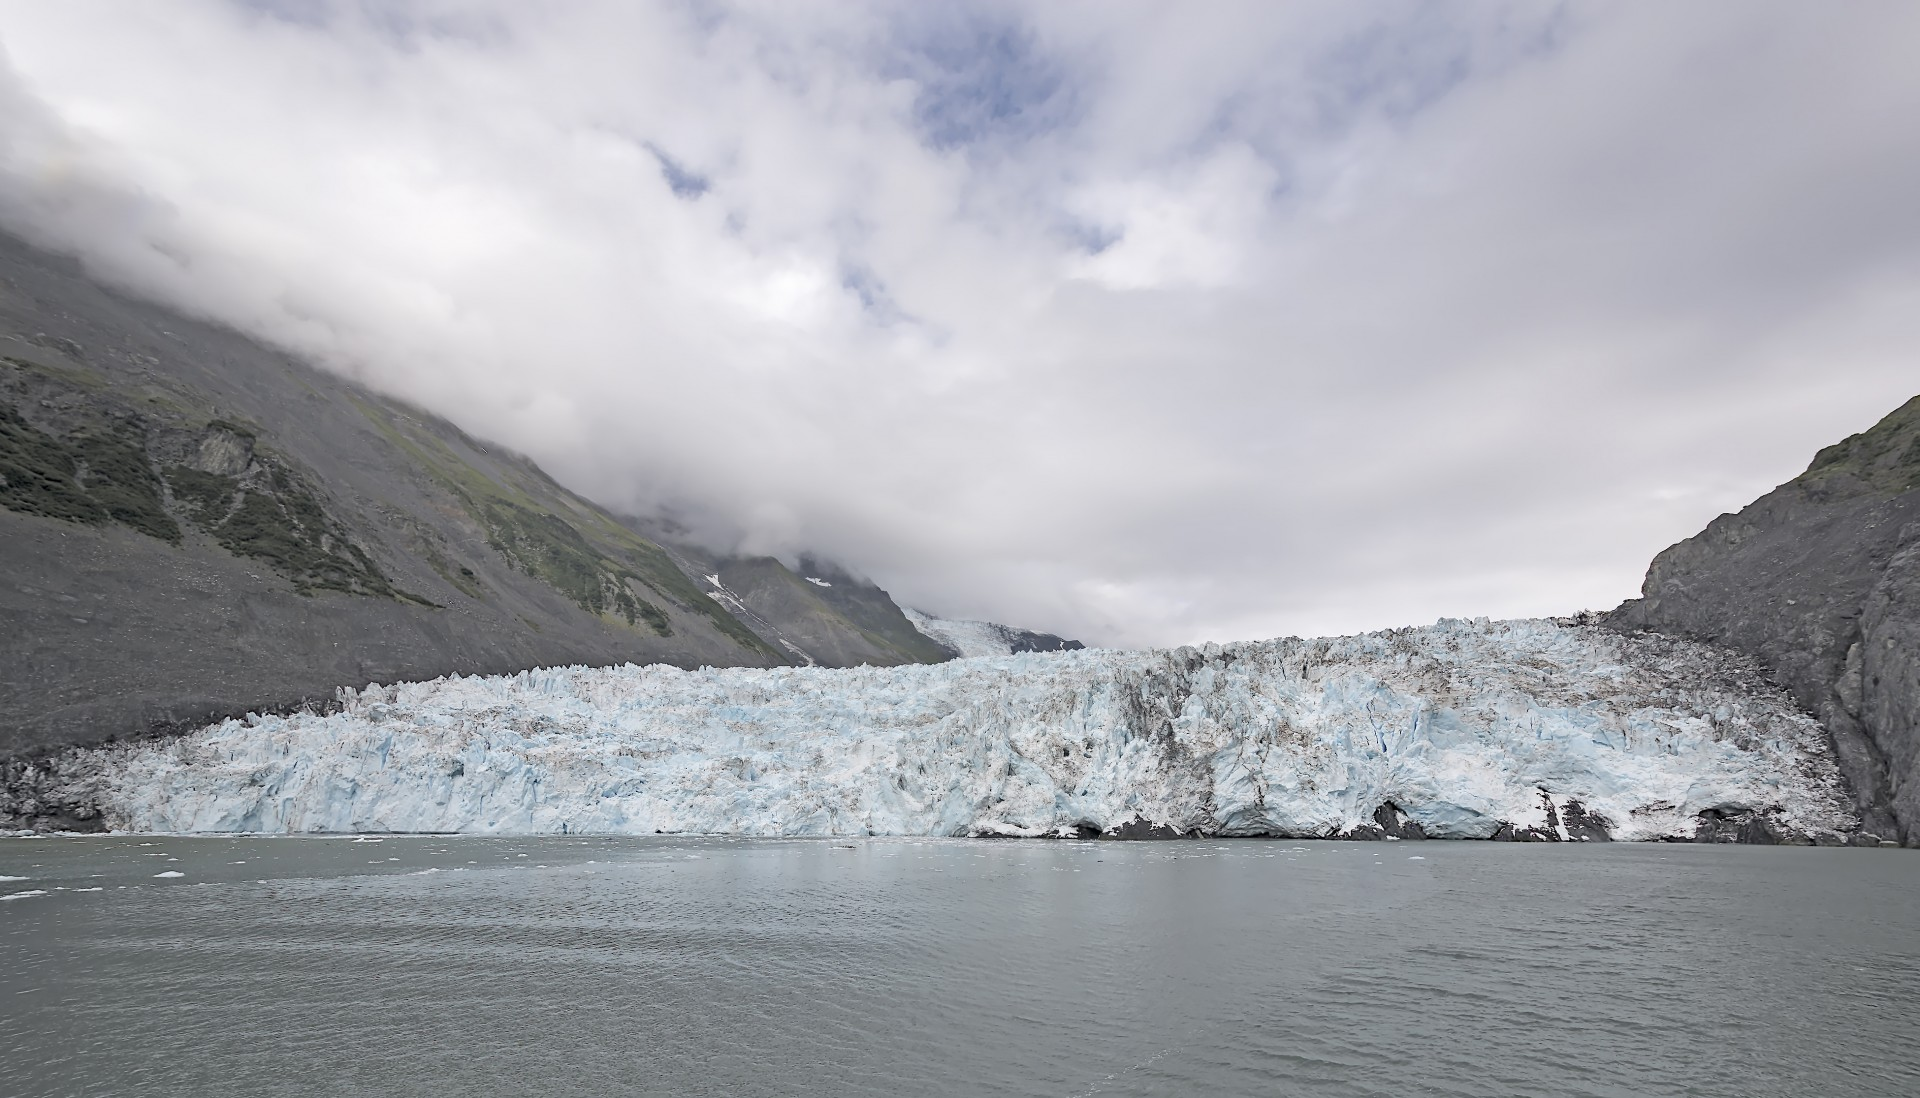 The Barry Arm glacier near Prince William Sound, Alaska, is melting rapidly. New data shows that melt could prompt a tsunami that could devastate local communities.